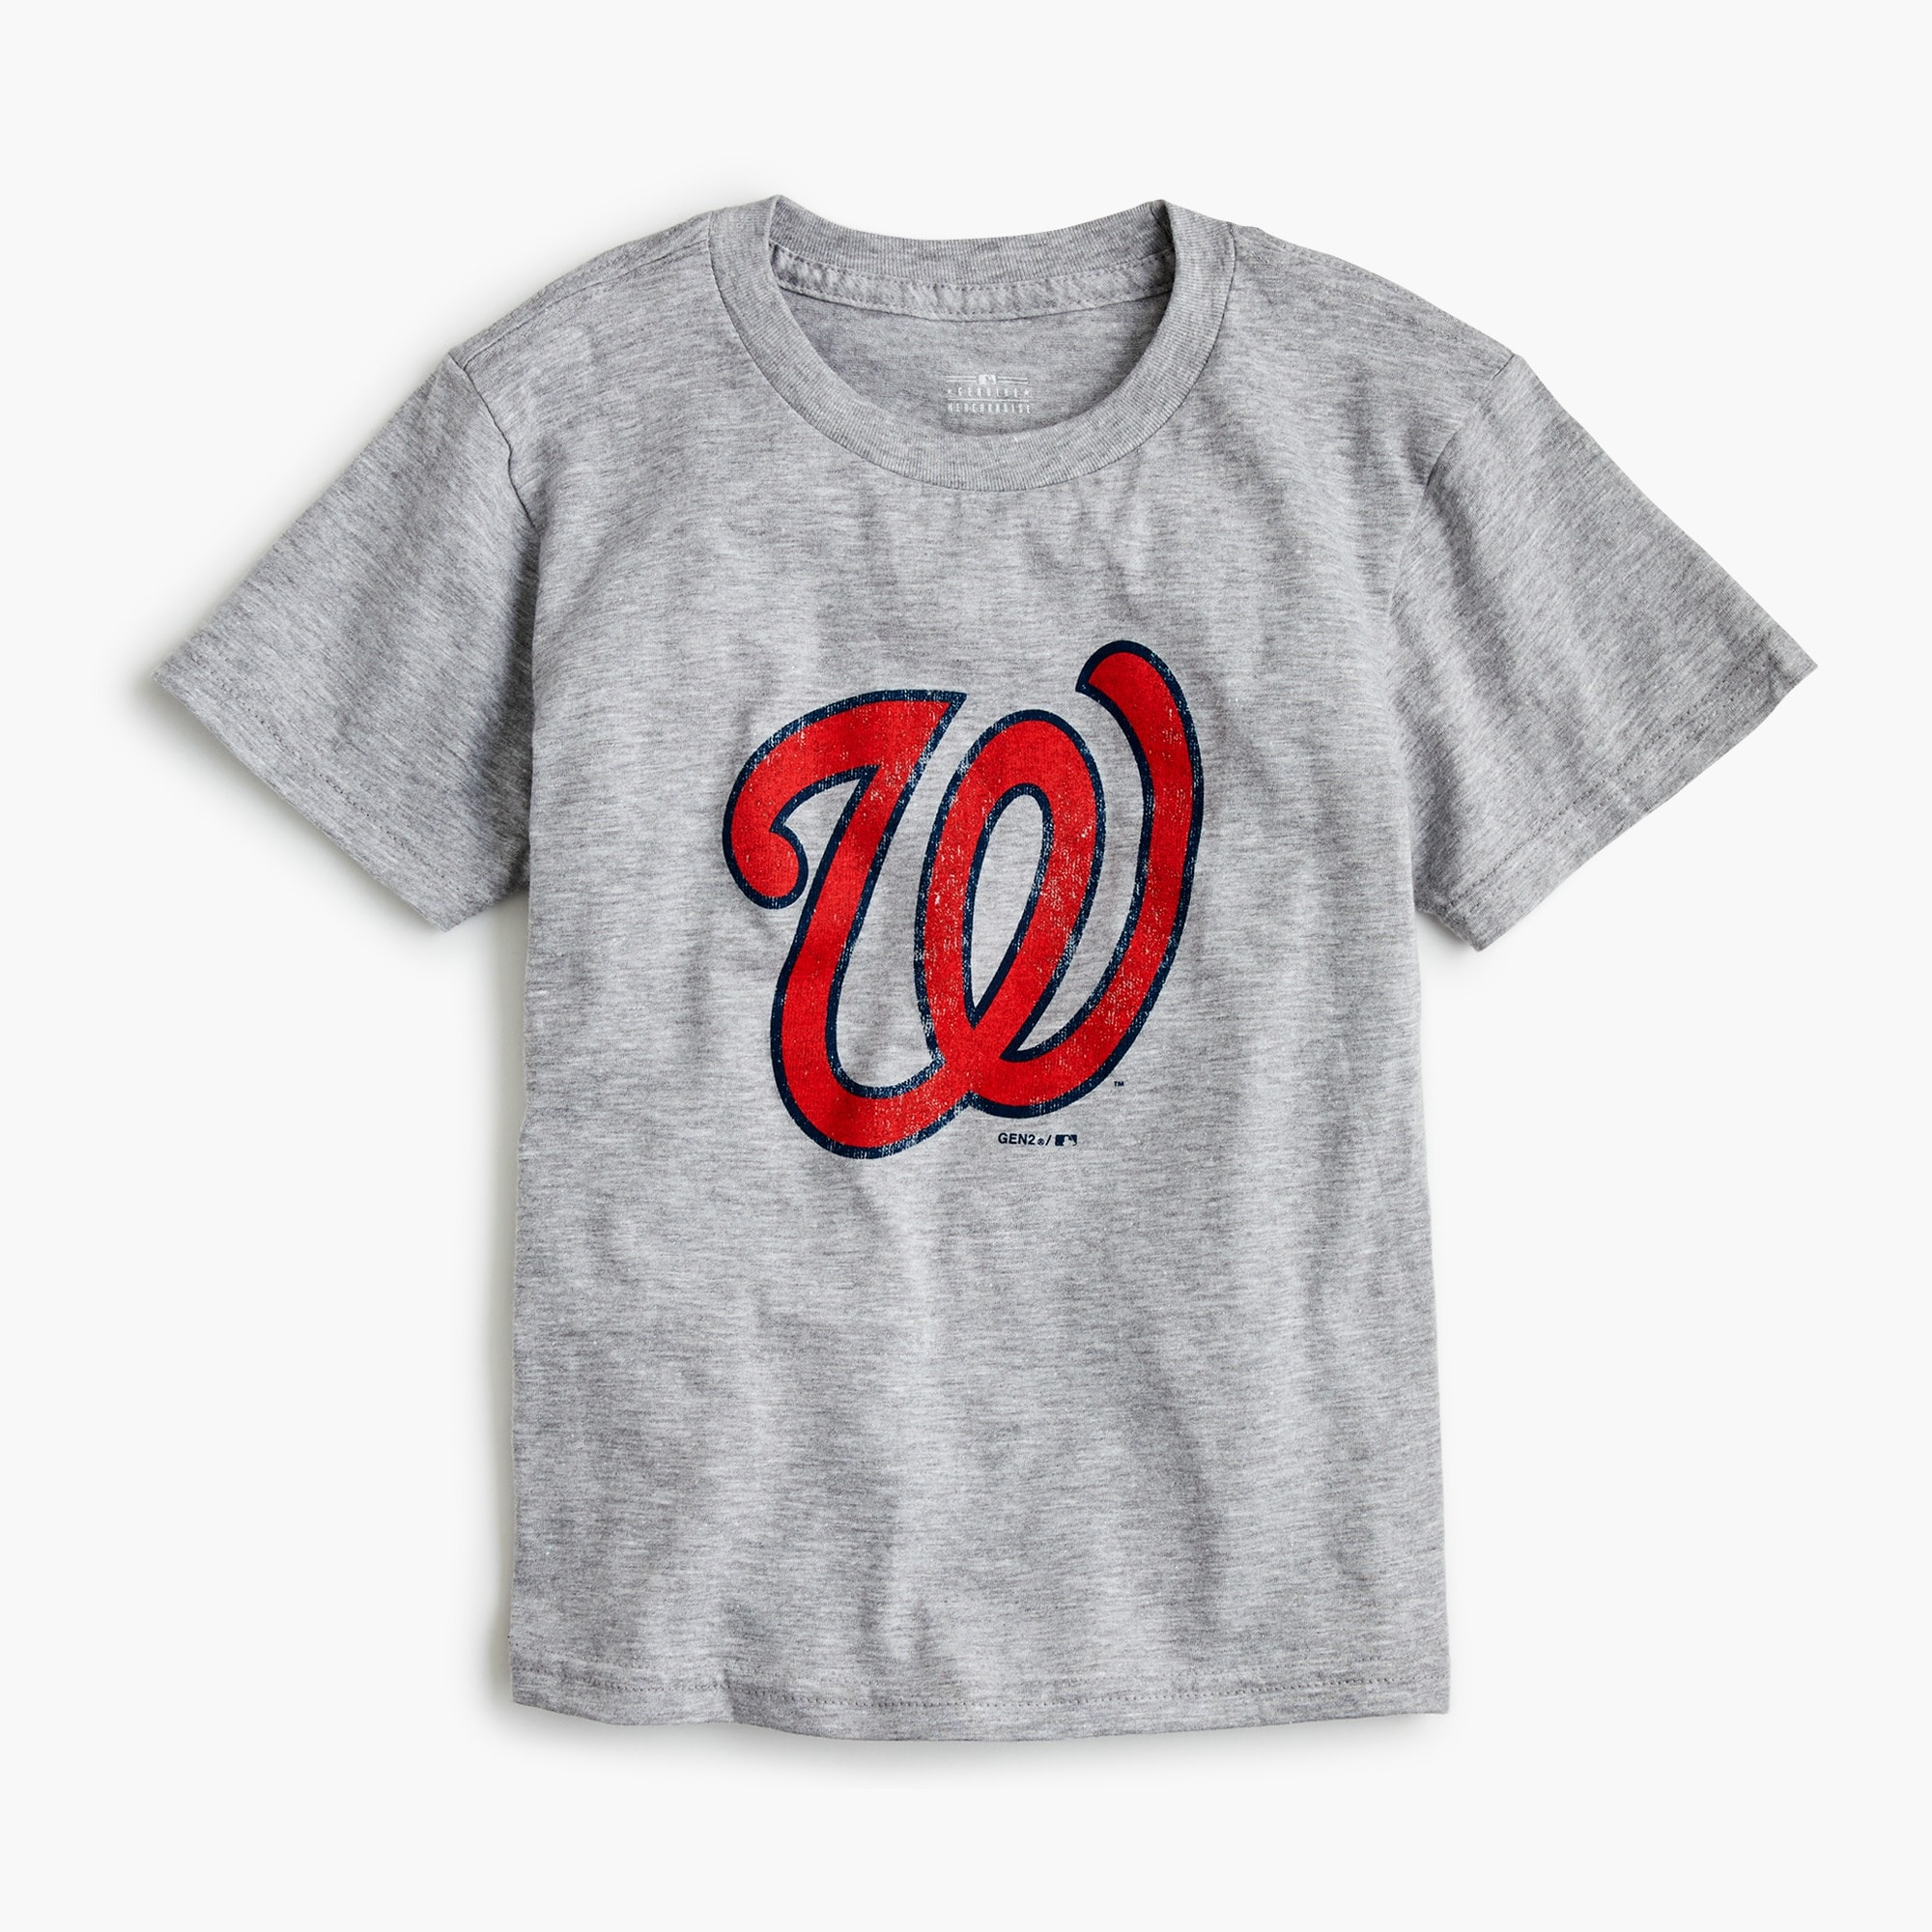 Kids' Washington Nationals T-shirt boy graphics shop c